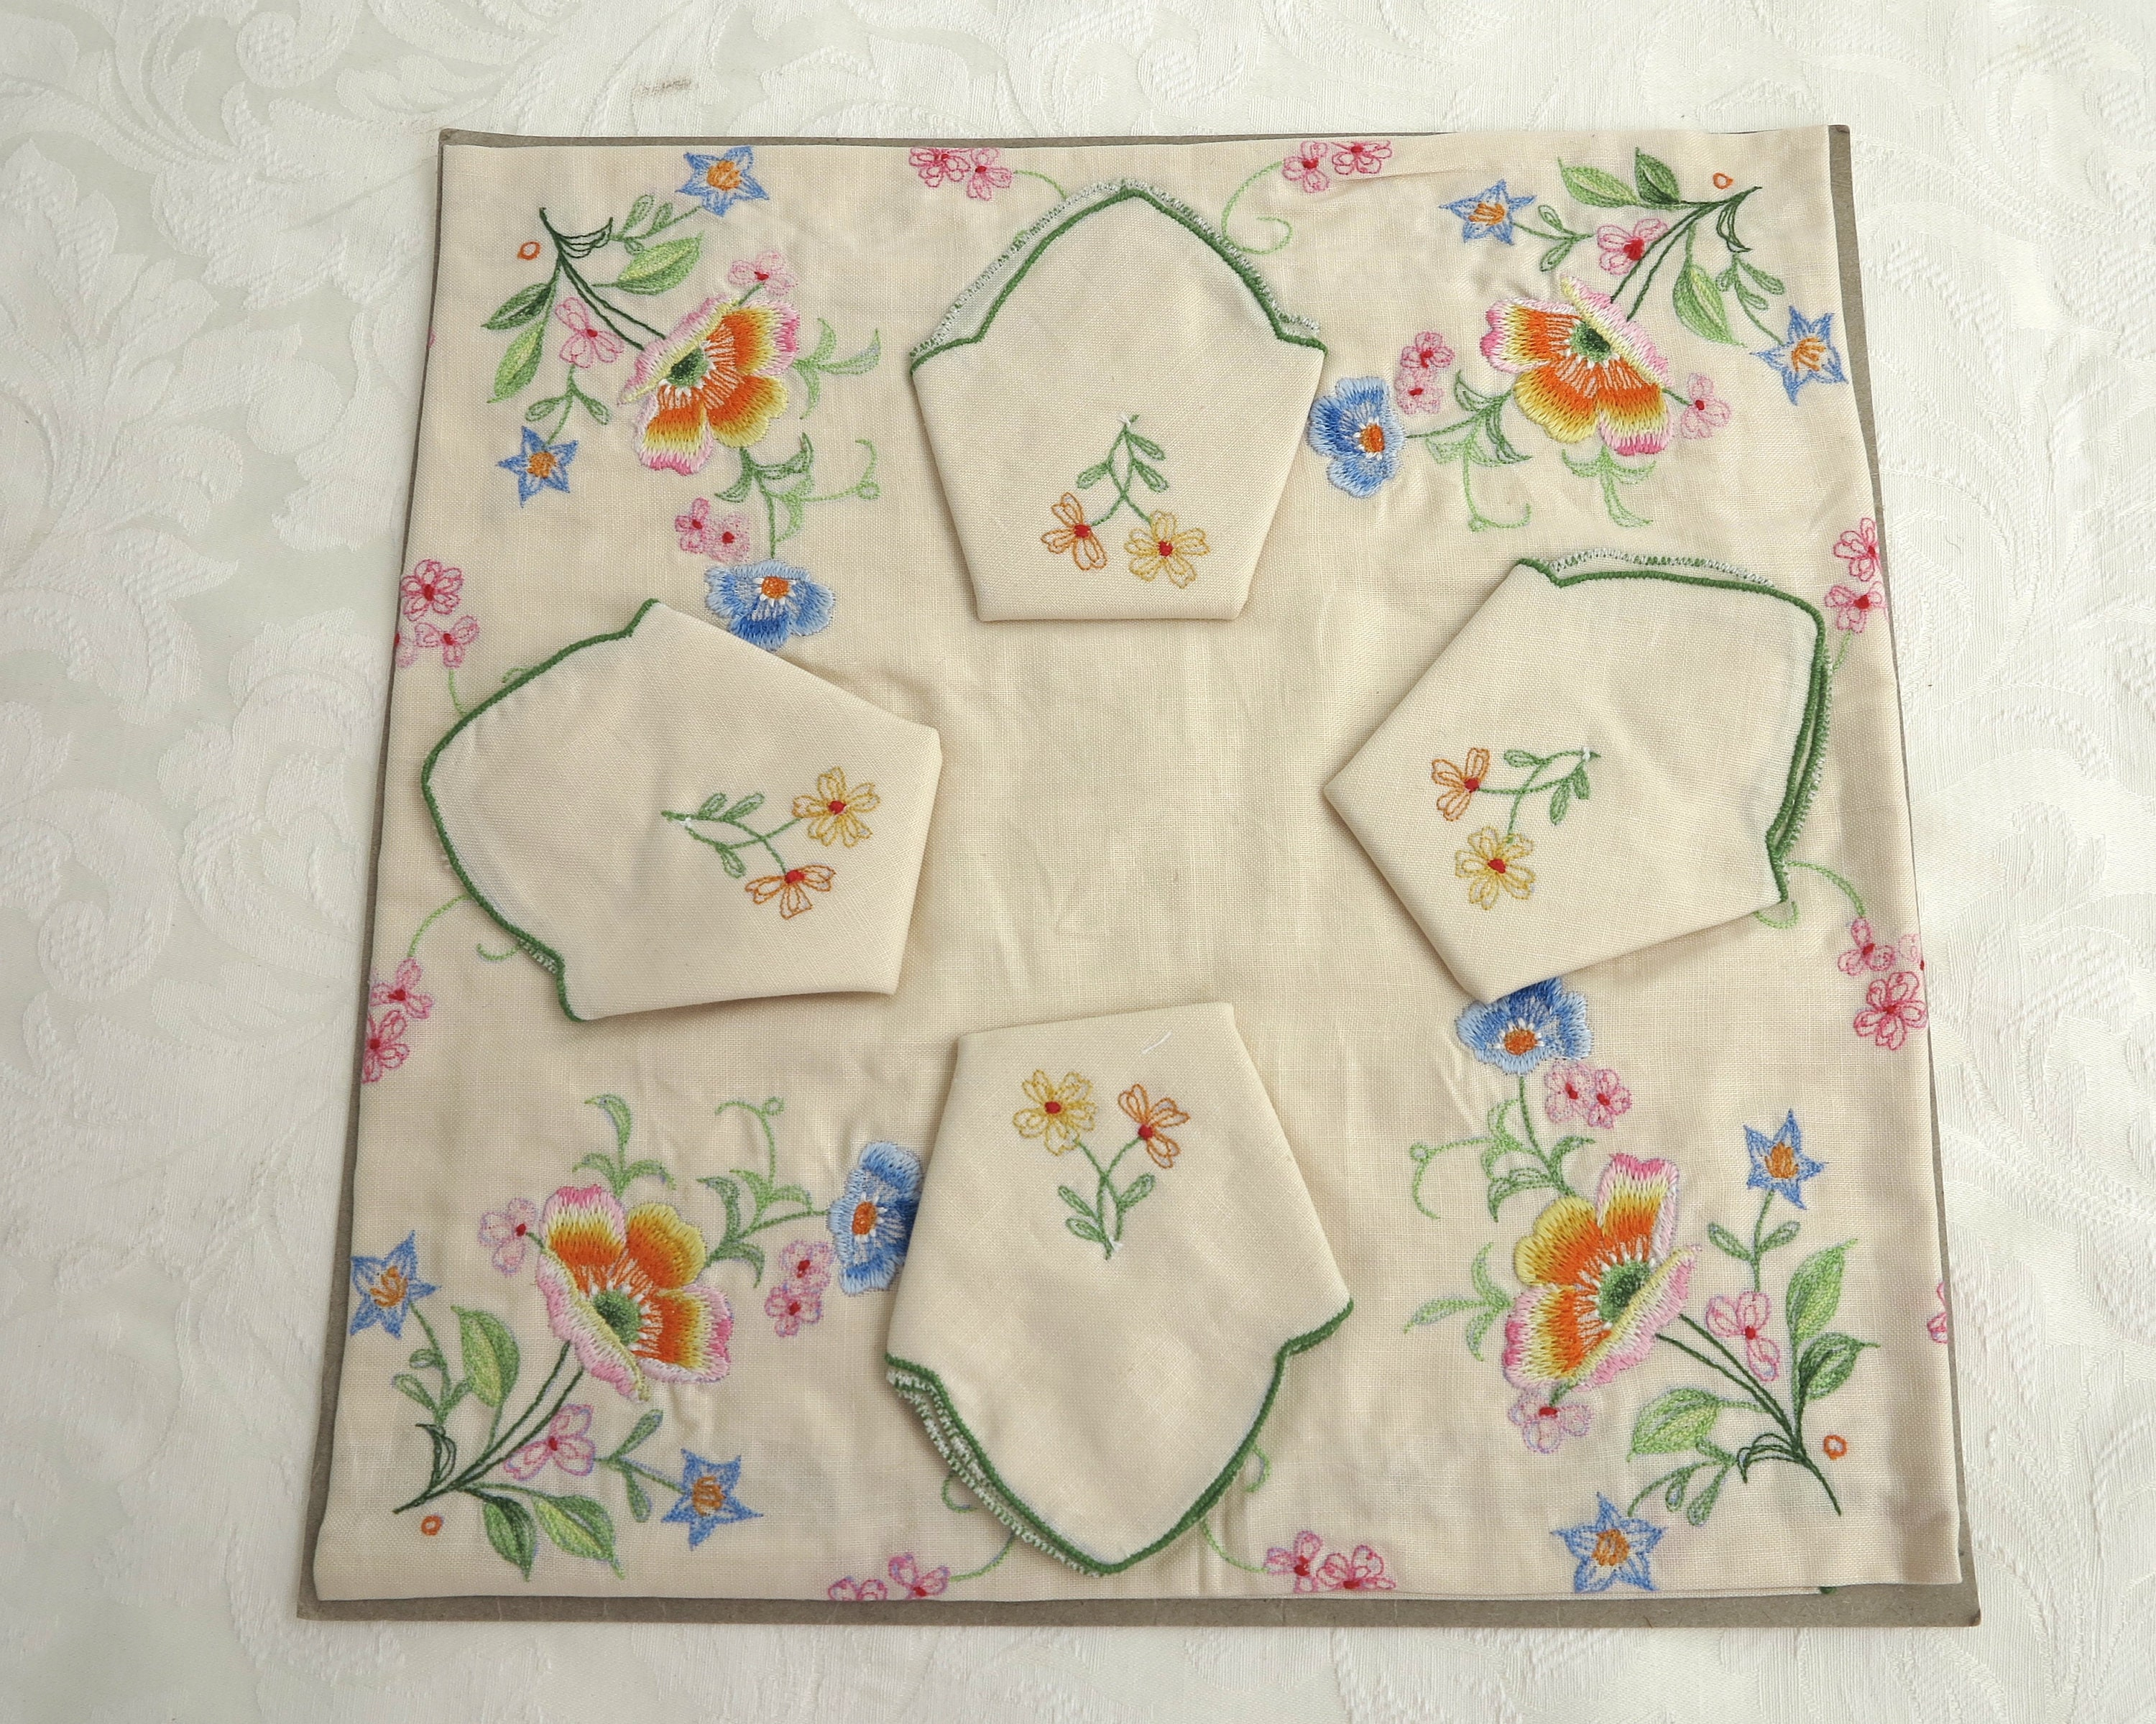 Embroidered Supper Cloth And 4 Napkins Floral Embroidery All Cotton Vintage Dead Stock 90 X 90 Cm 35 5 X 35 5 Inches Circa 1980s